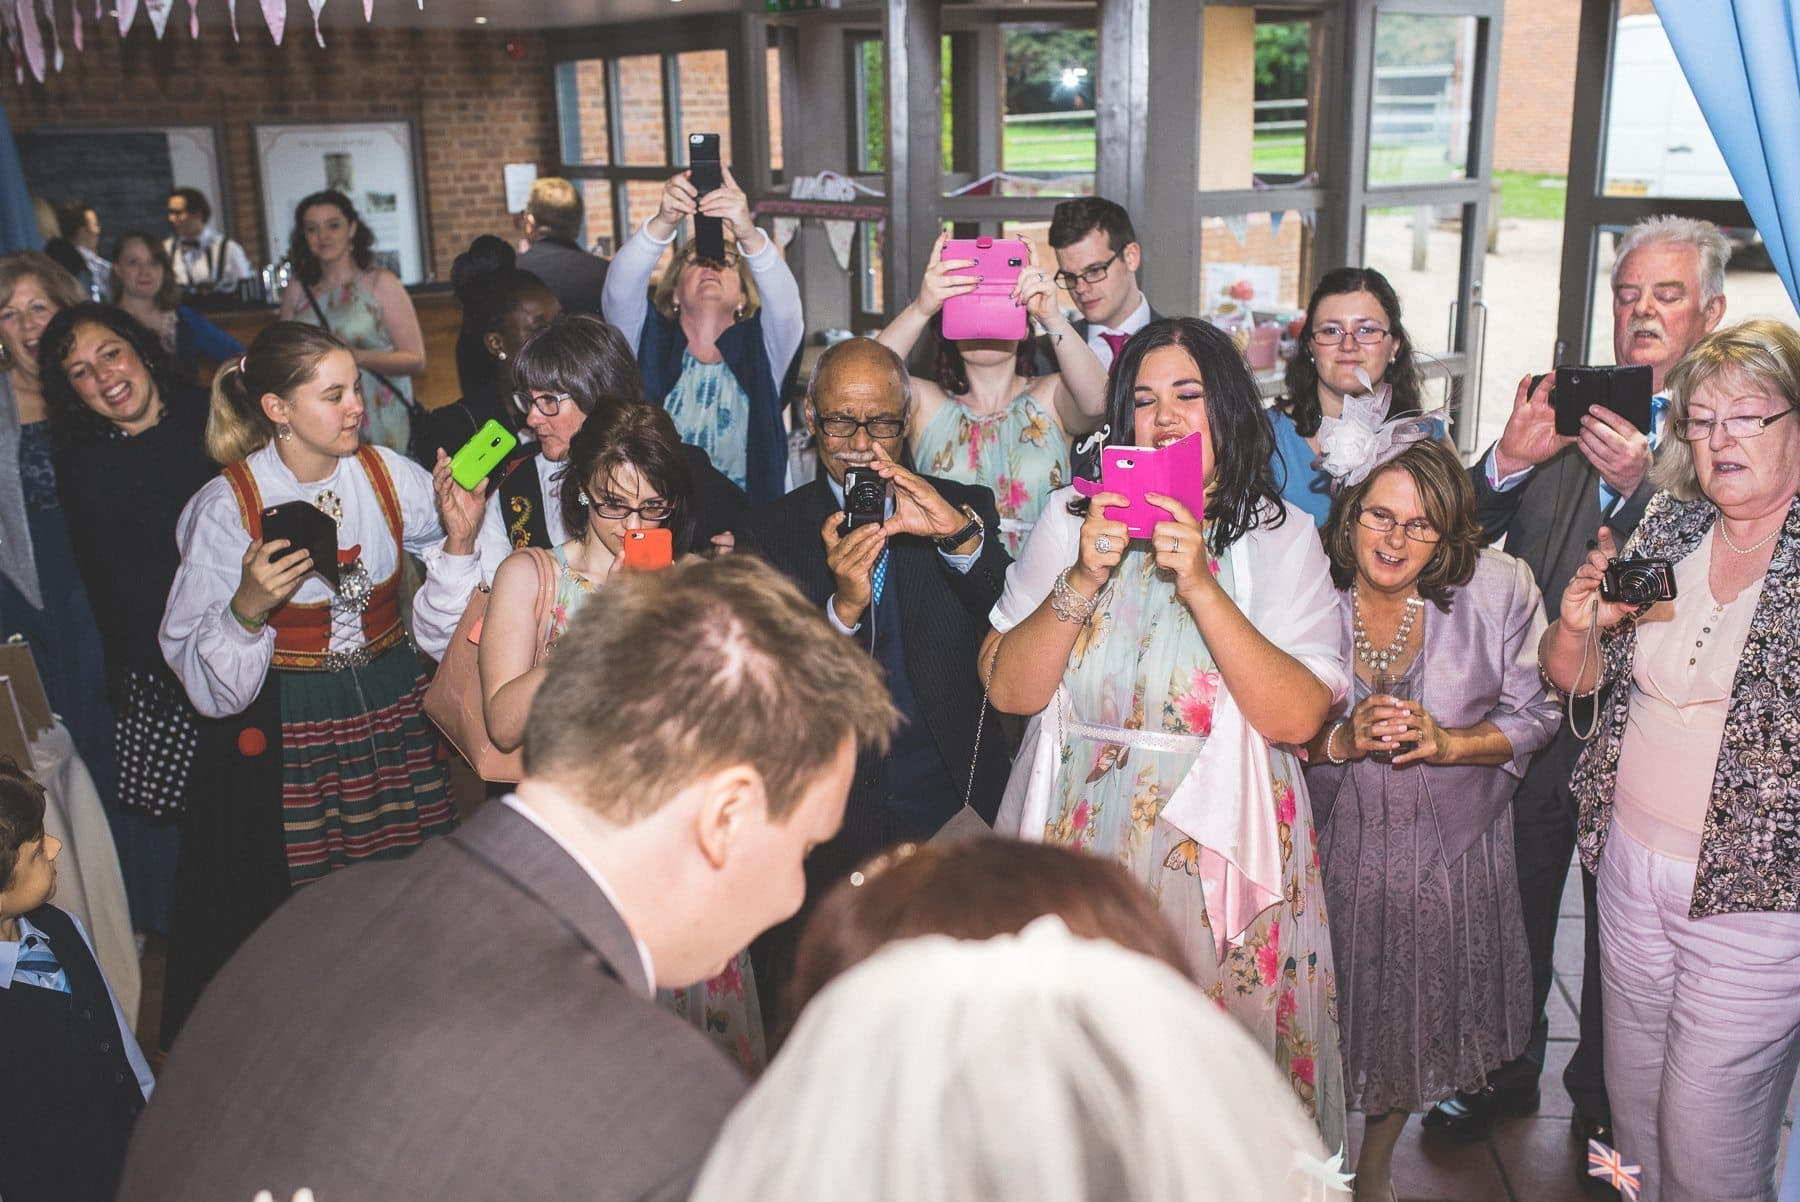 hire a professional wedding photographer rather than a friend